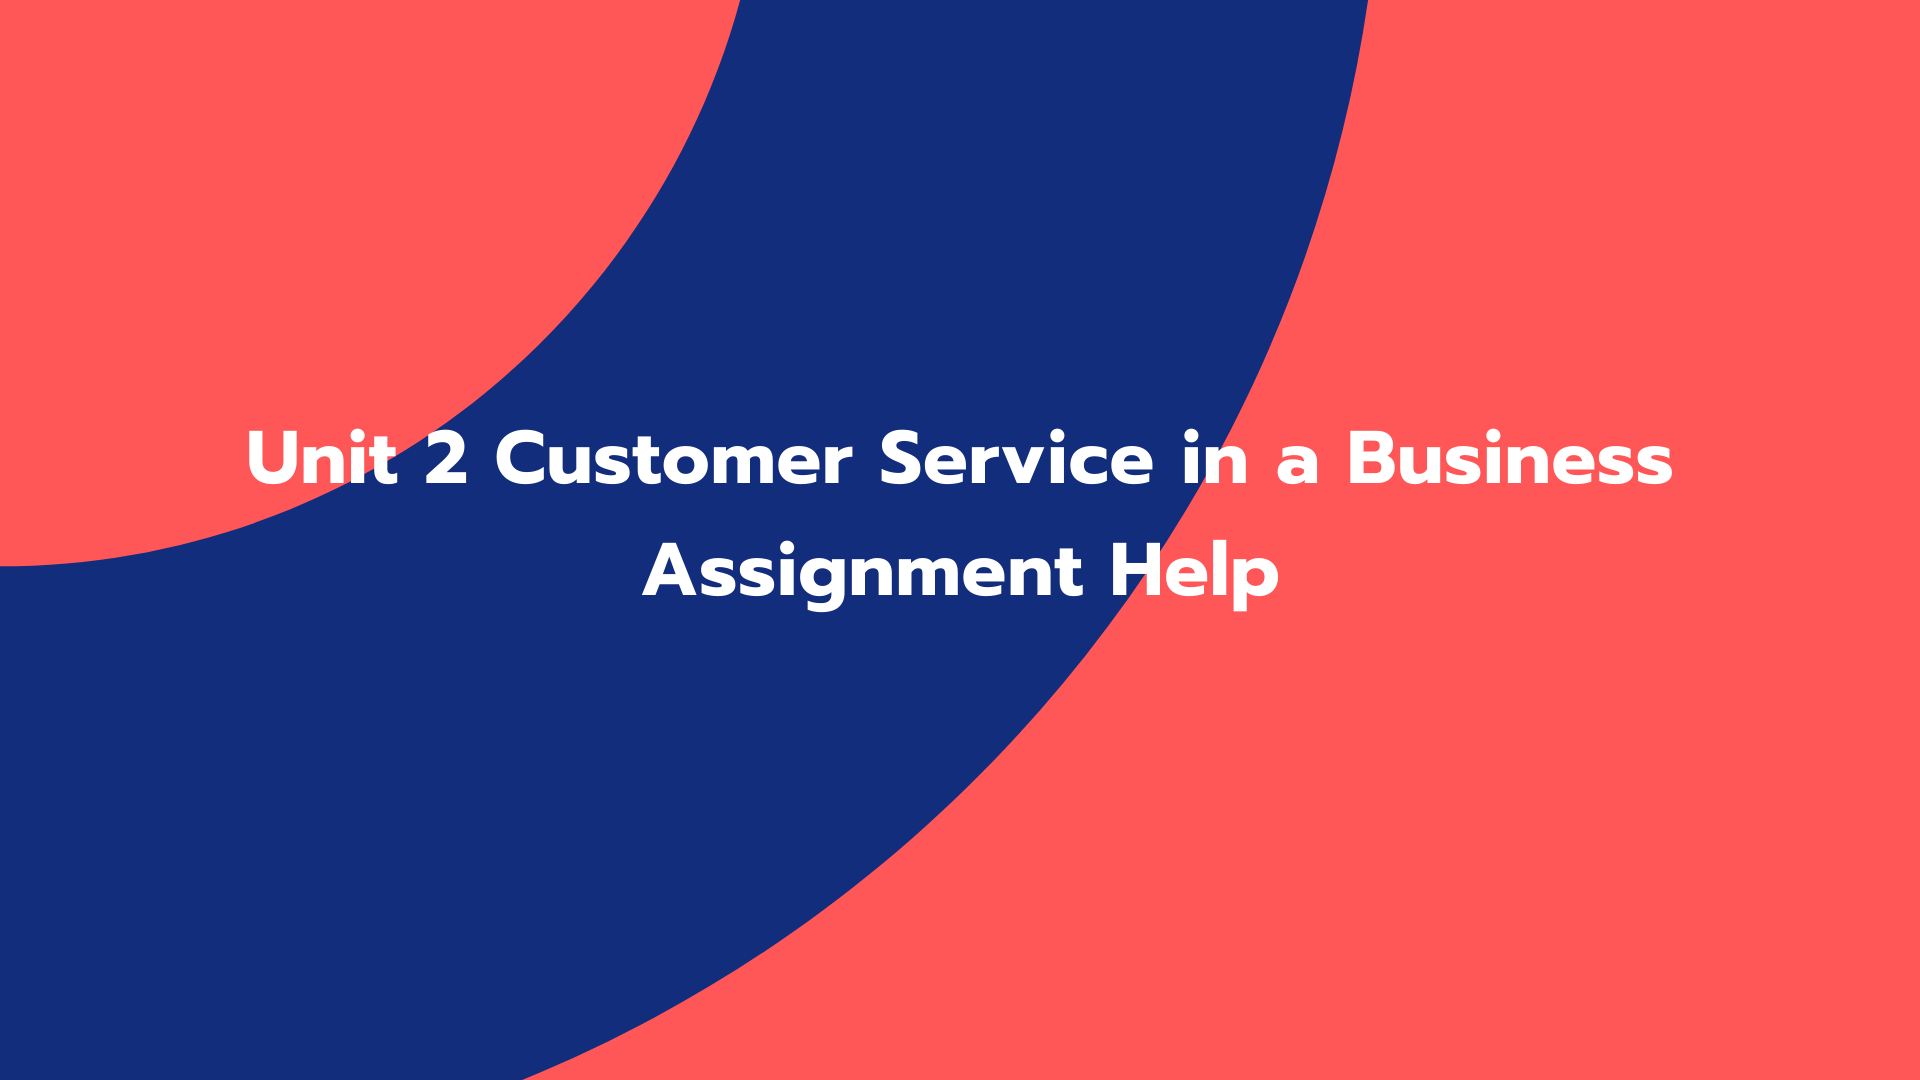 Unit 2 Customer Service in a Business Assignment Help